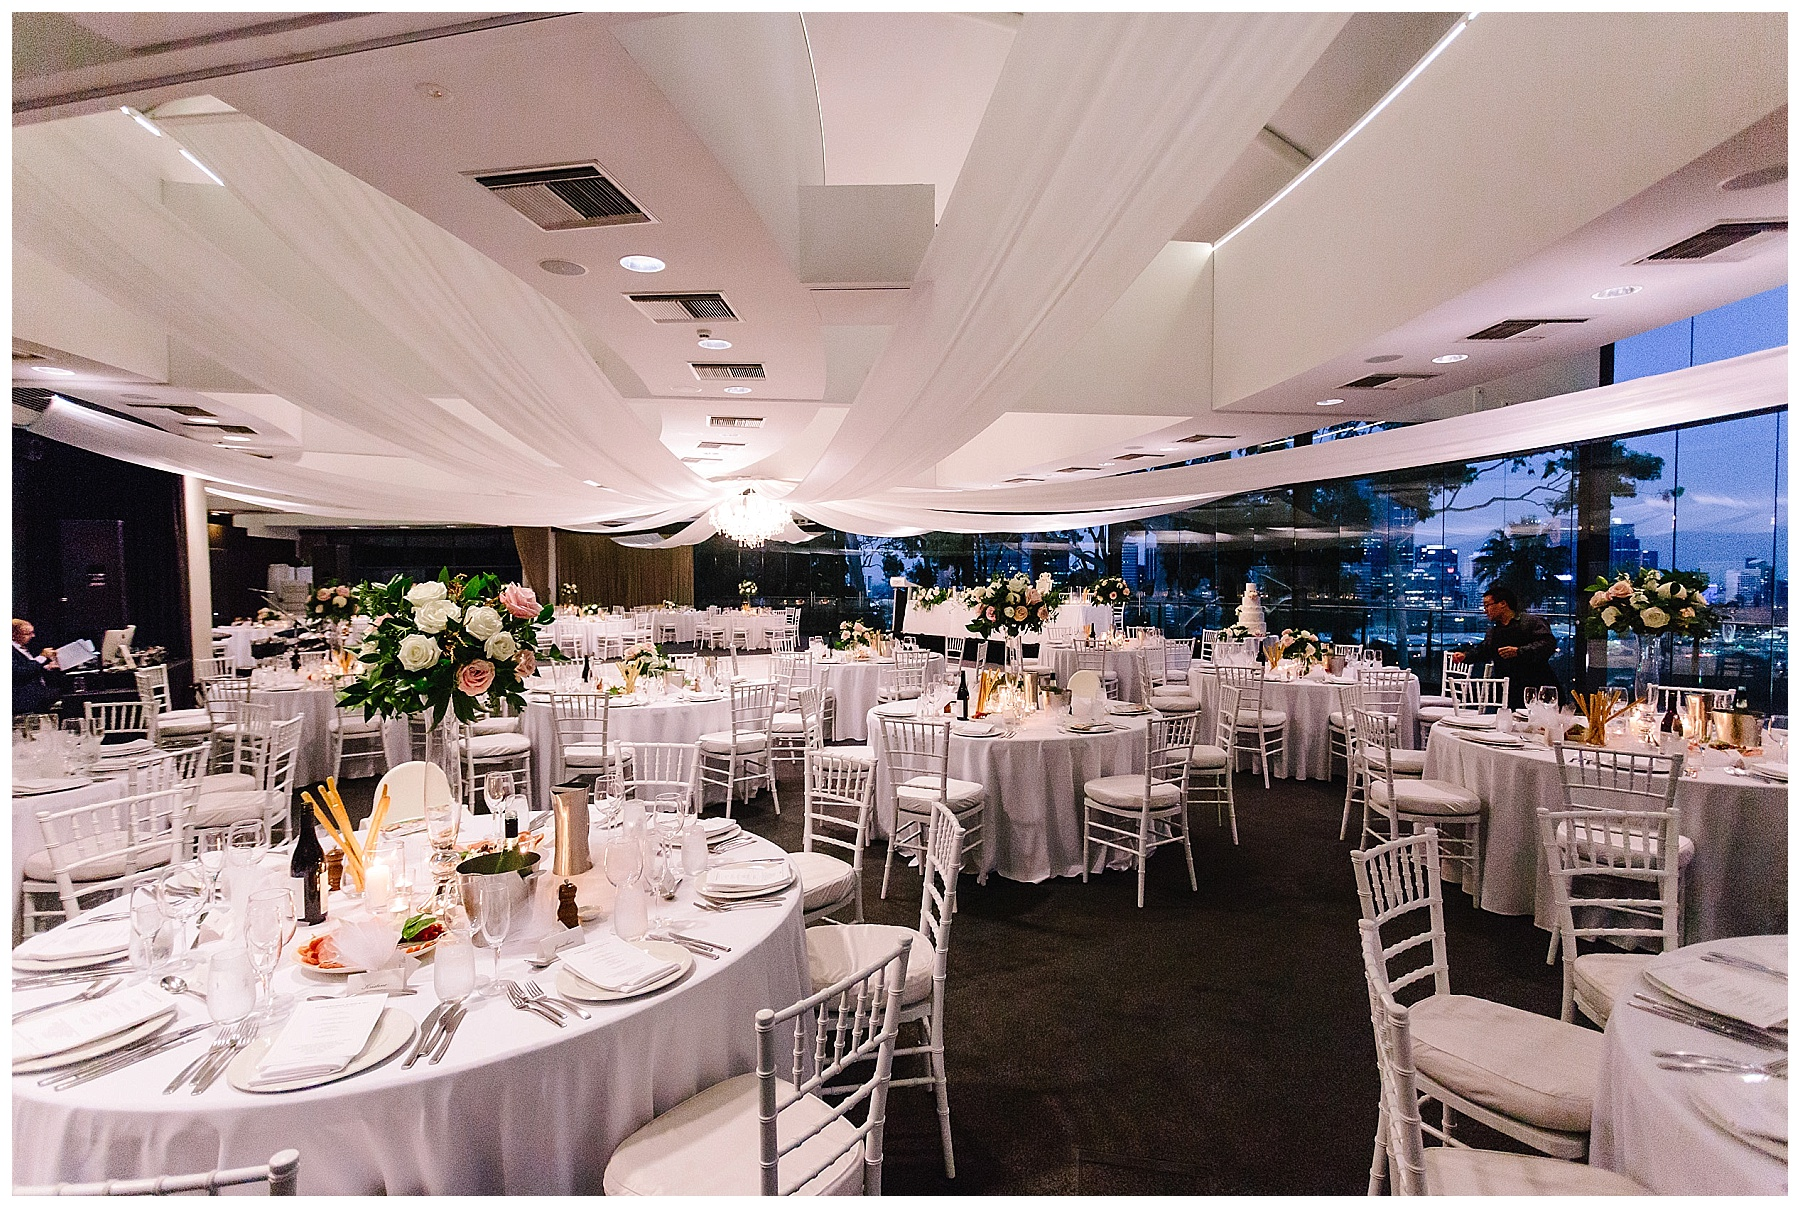 Event Style ceiling drapes at Frasers